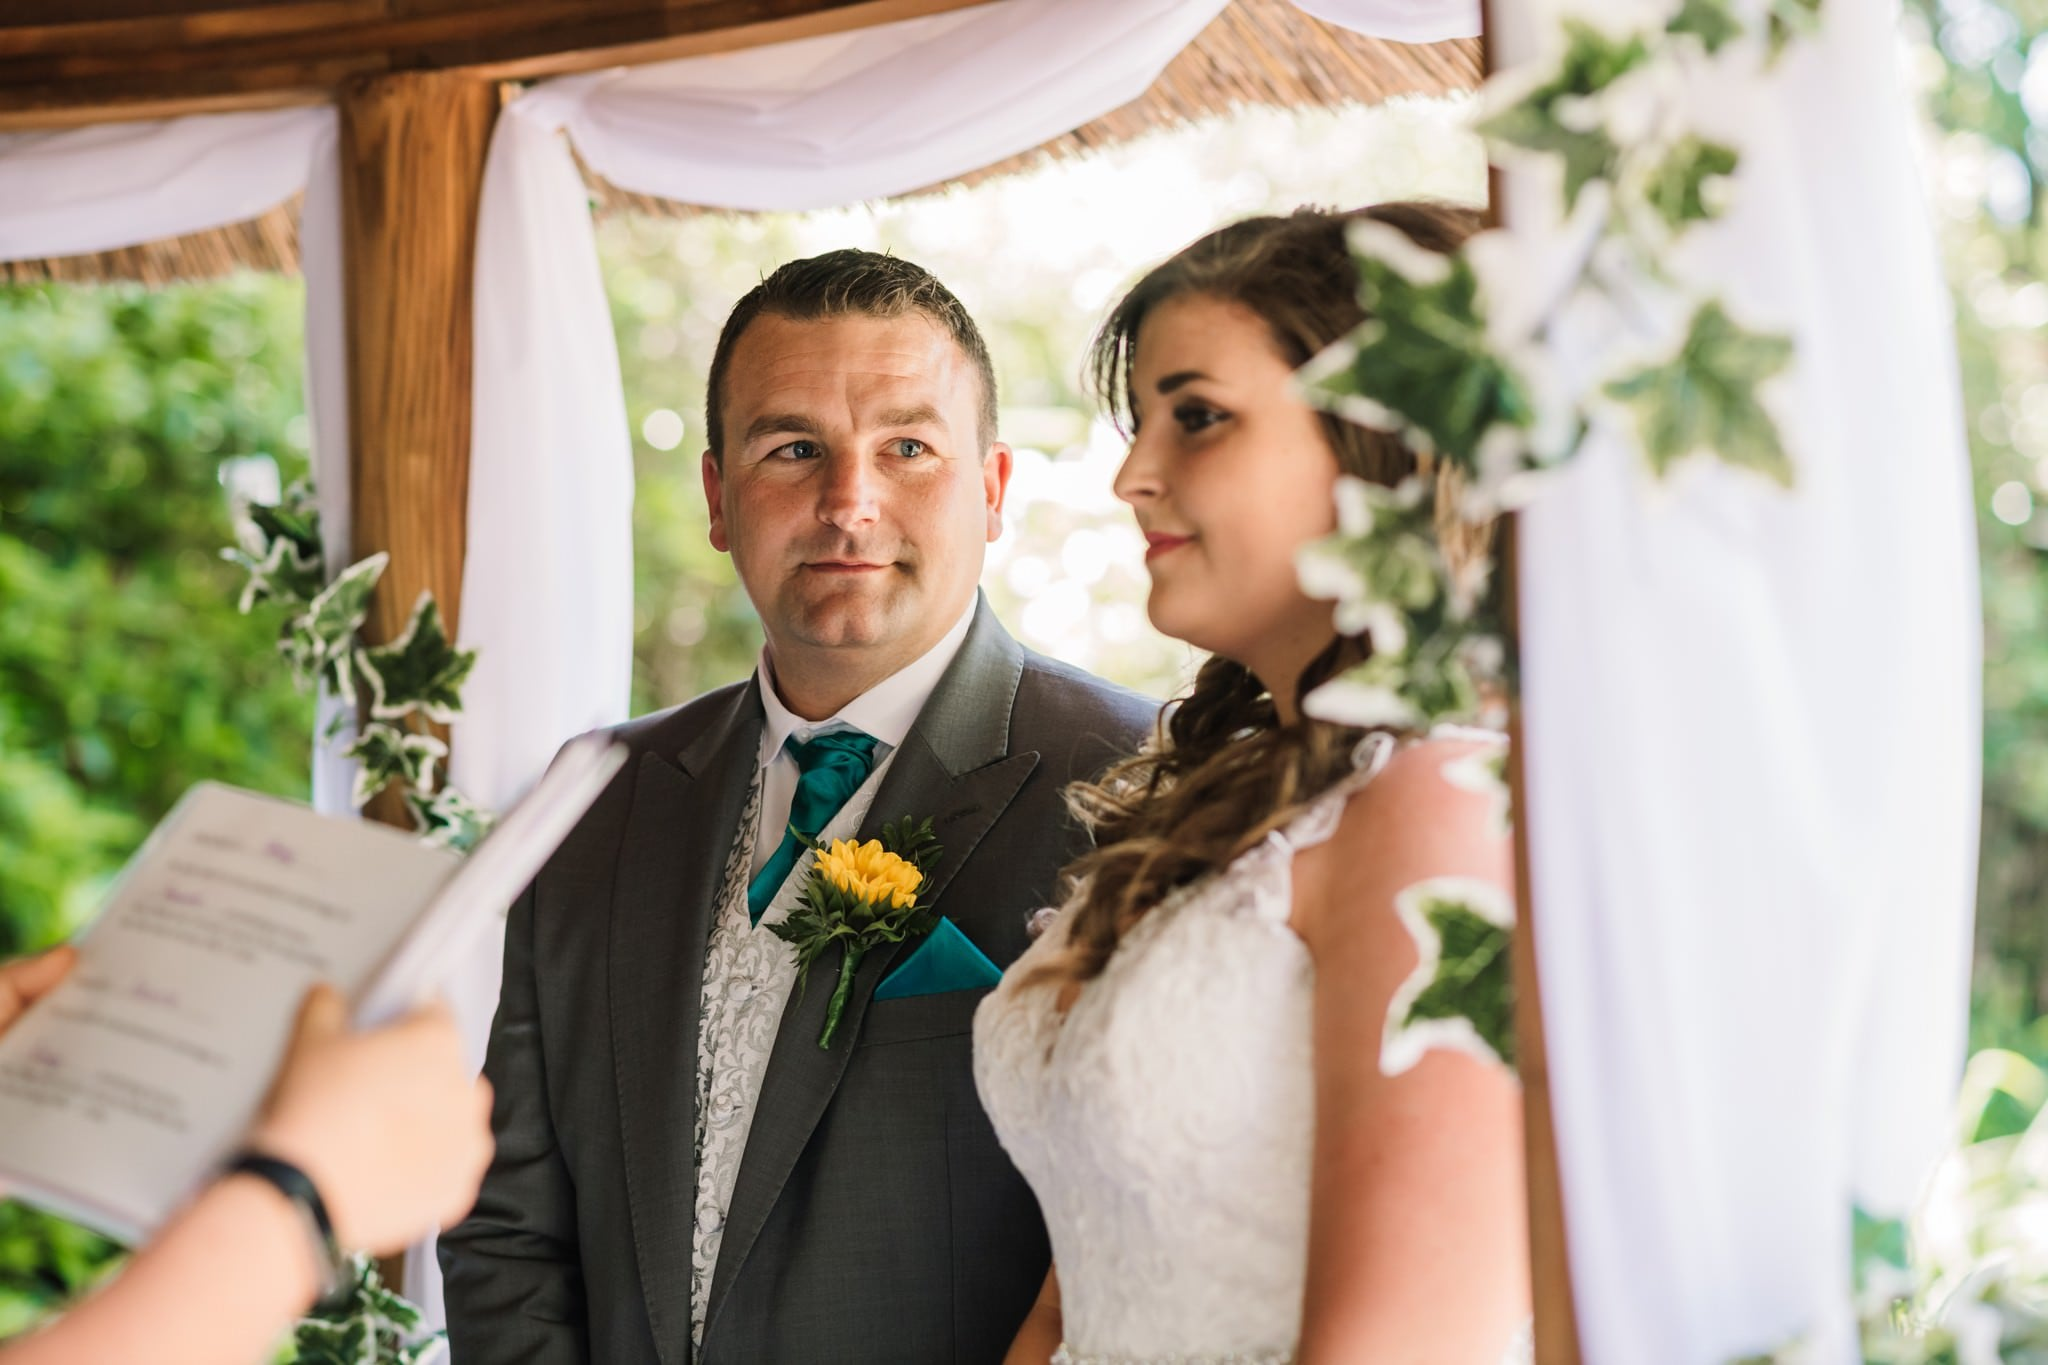 Groom during ceremony at Gordleton Mill